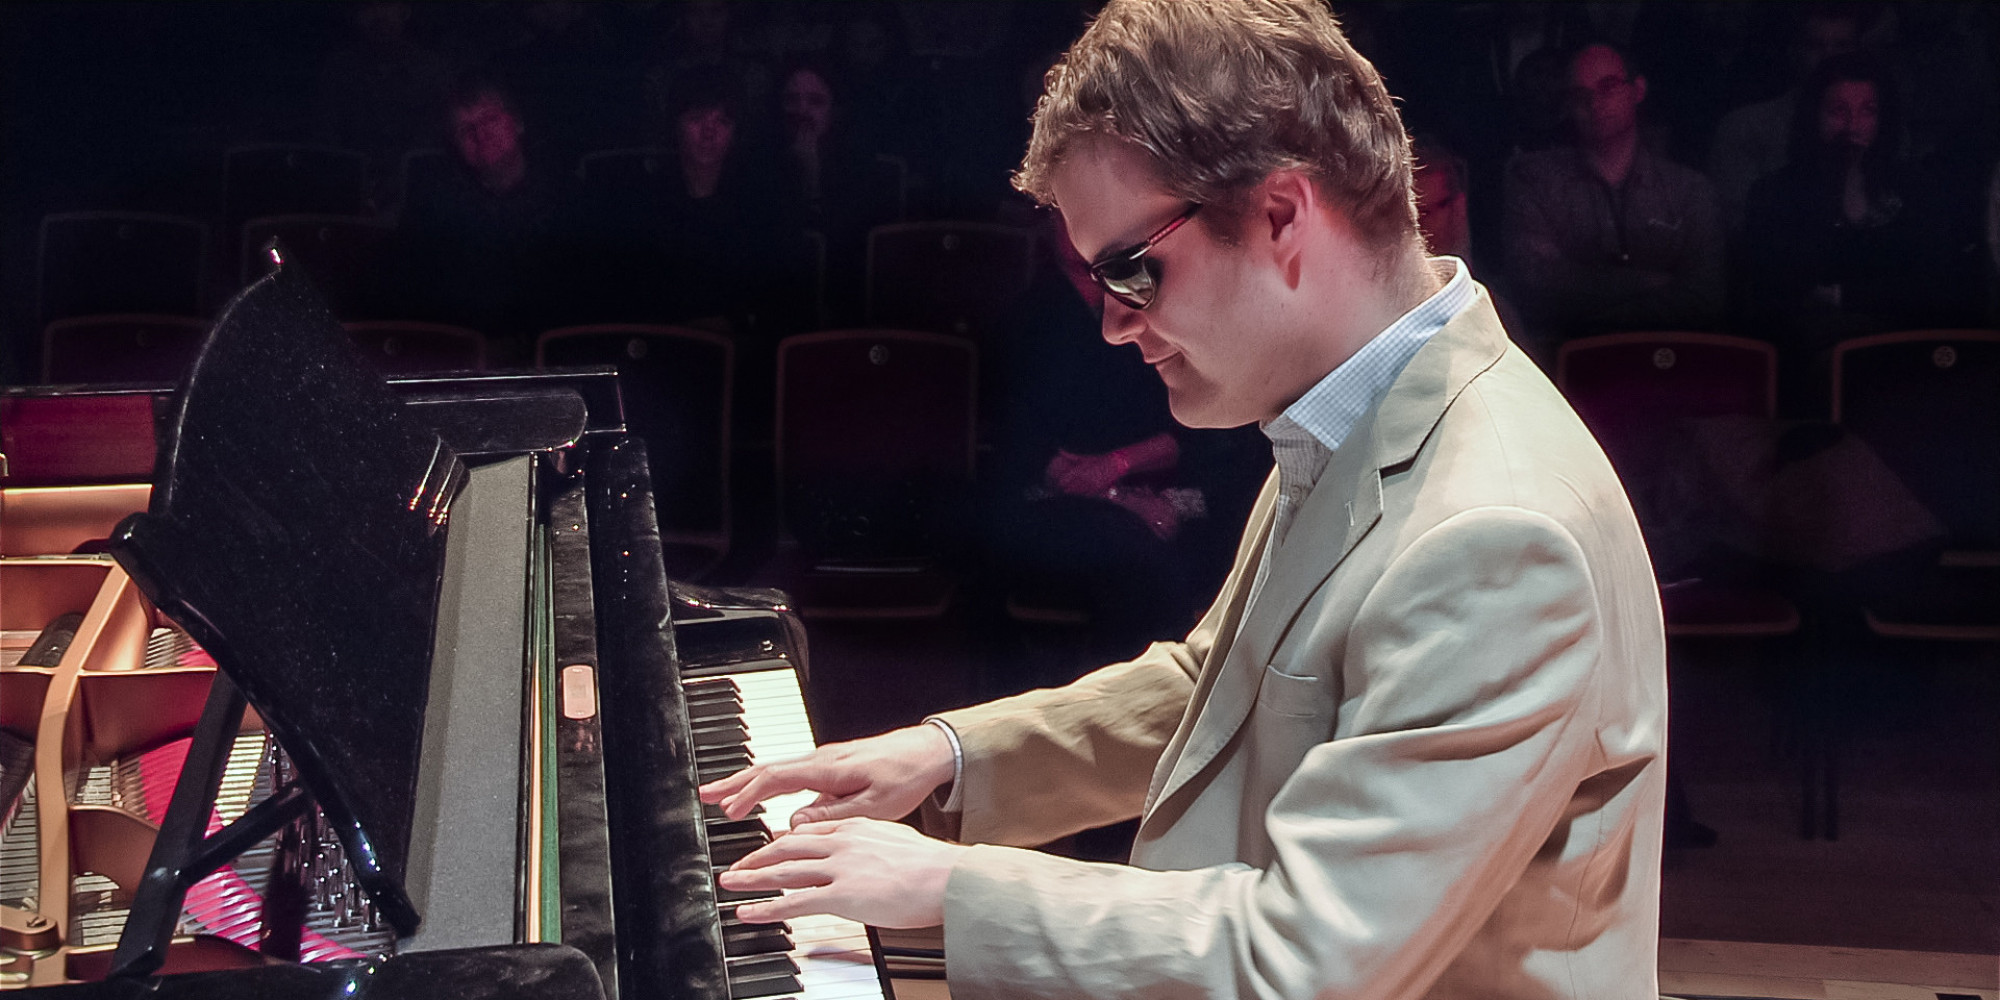 WATCH A Jaw dropping Performance From a Blind Musical Genius With